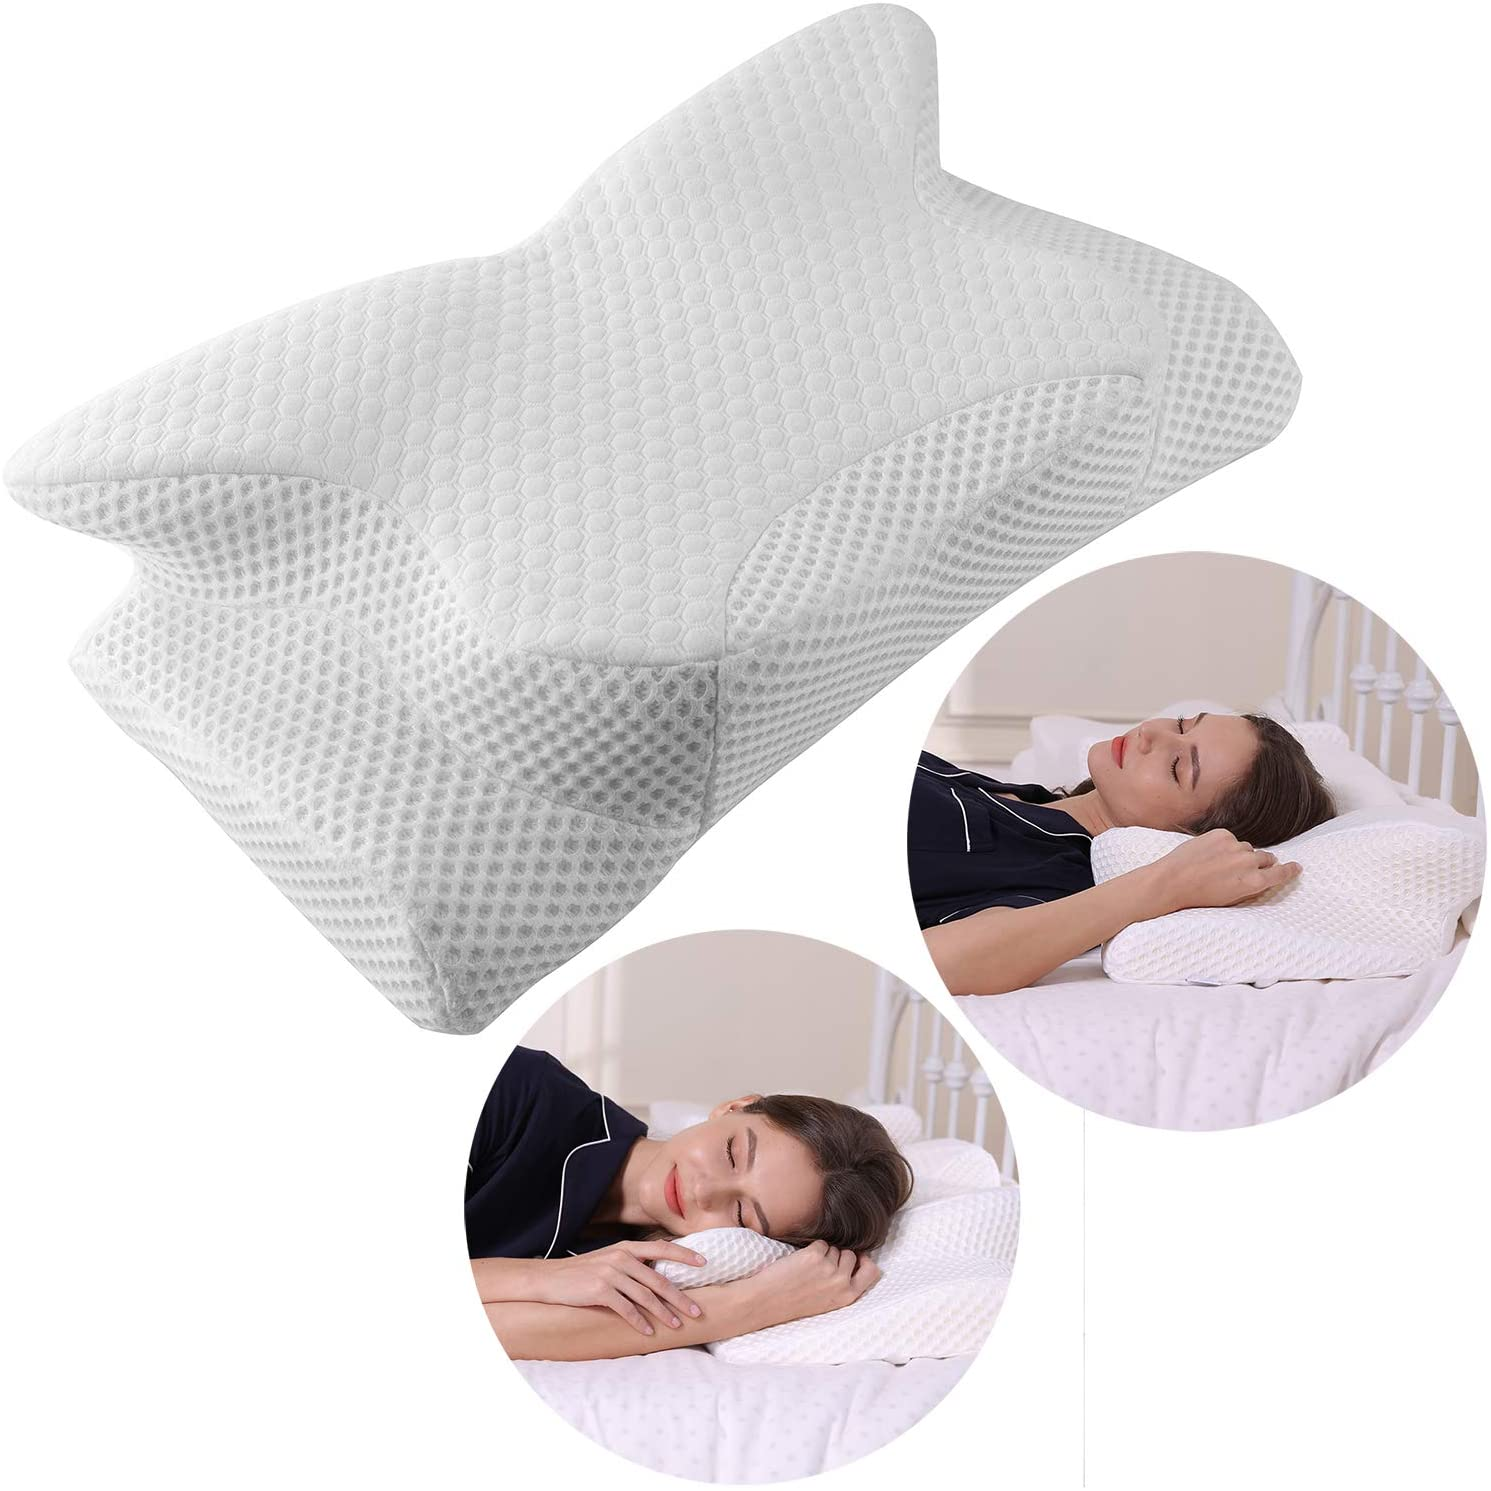 Everything you need to know about how a cervical orthopedic pillow can improve the quality of sleep you are getting.